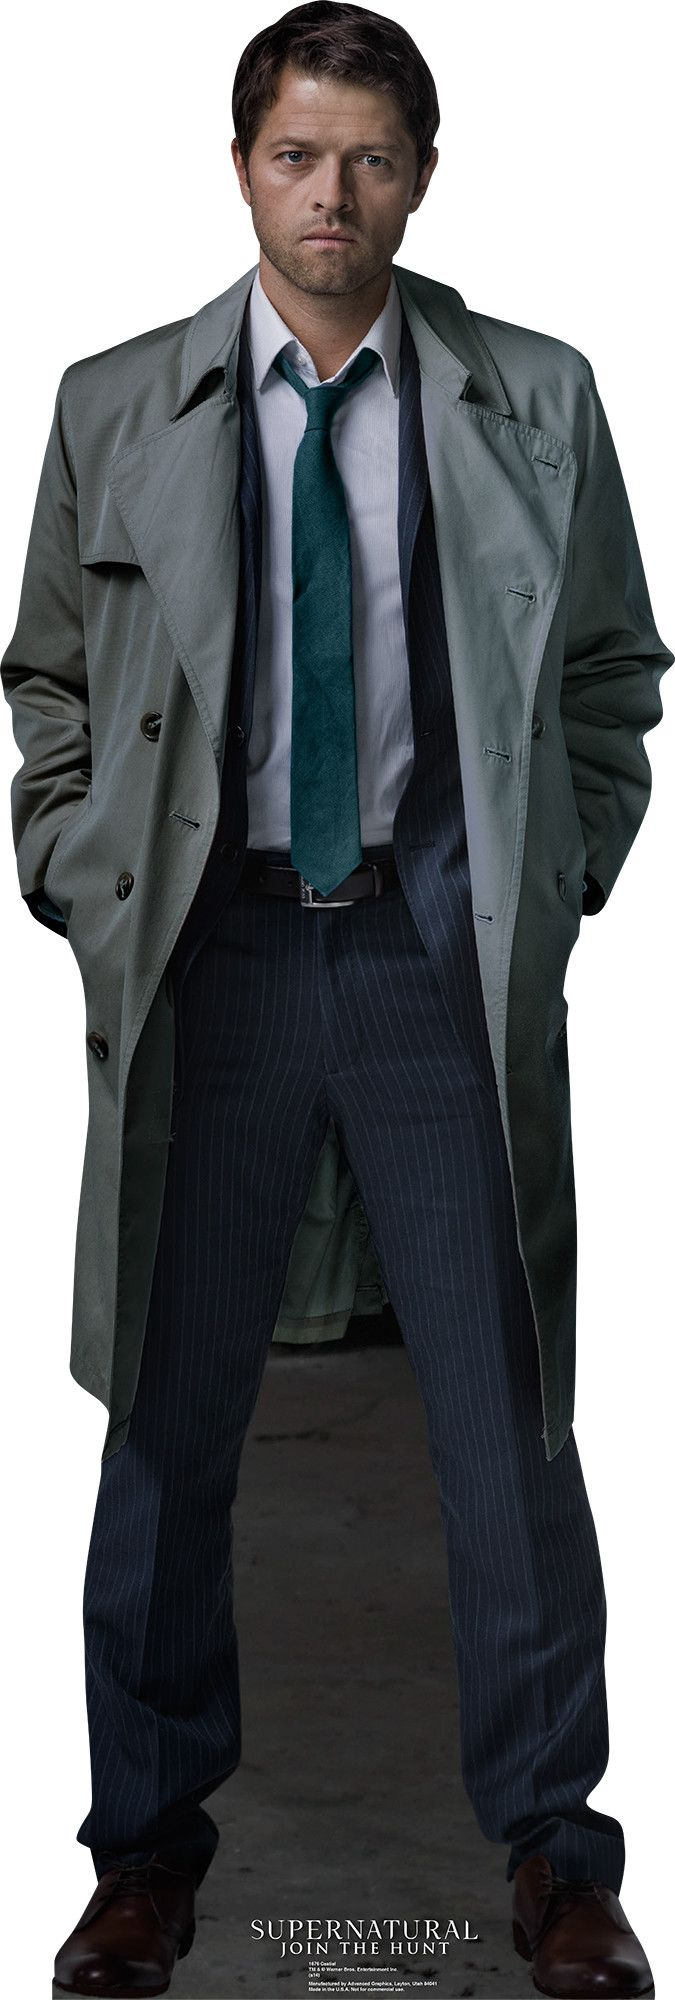 Castiel - Supernatural Cardboard Standup... Oh have I got plans with this....